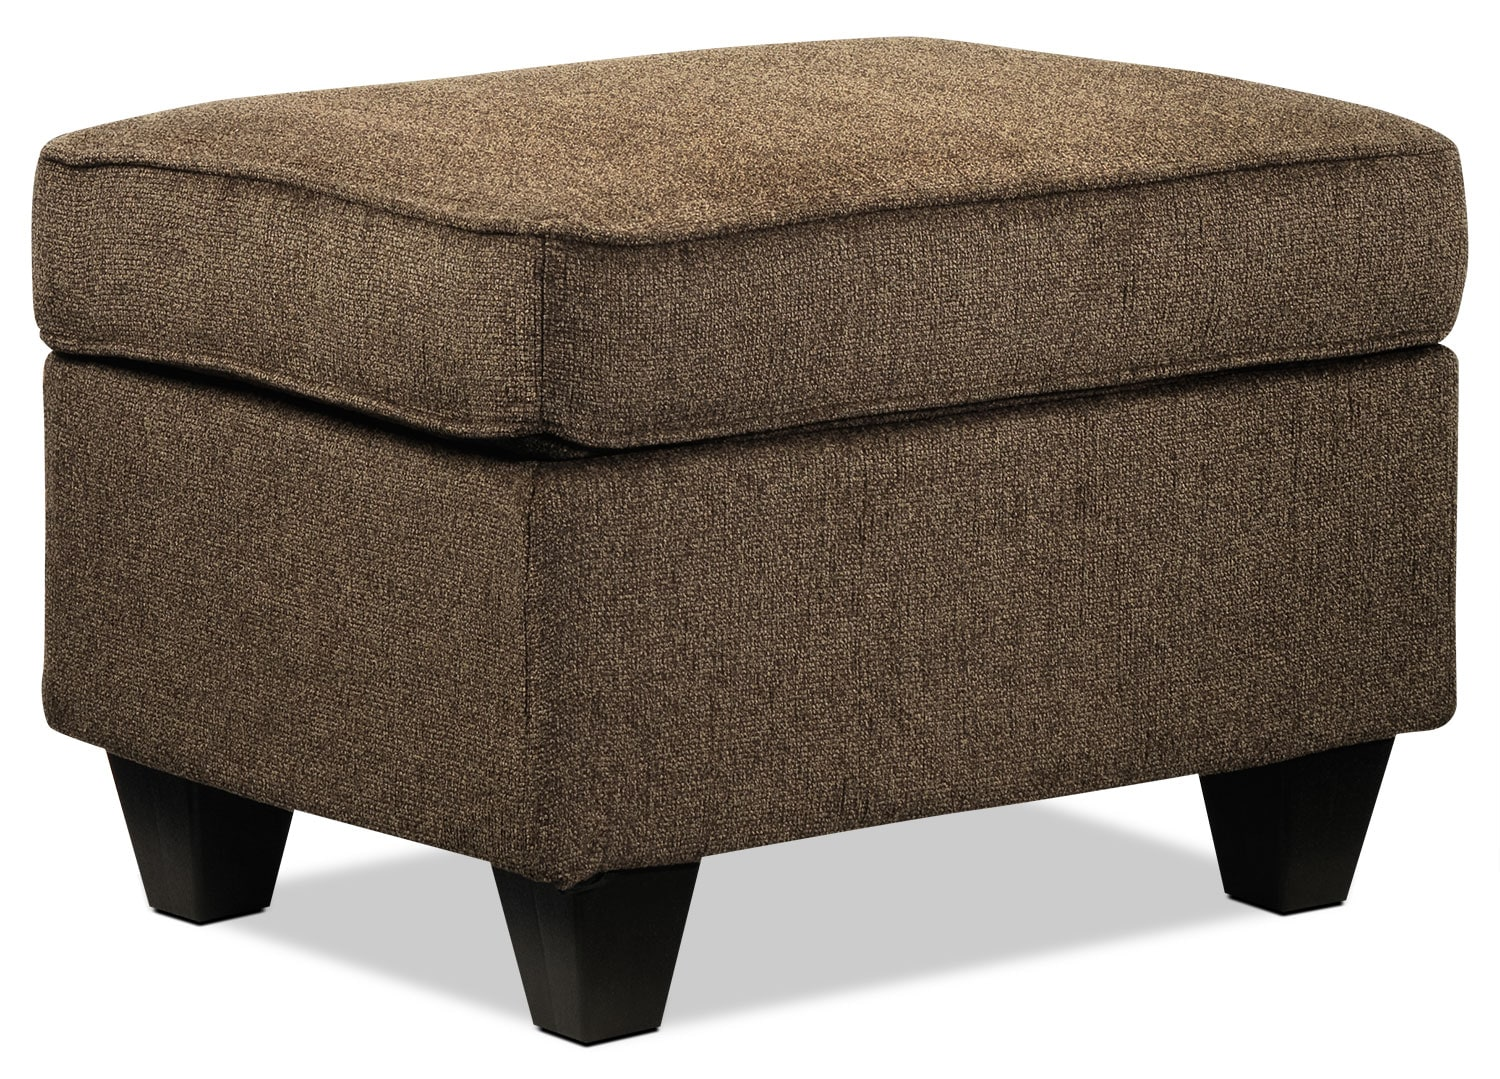 Living Room Furniture - Cornell Ottoman - Brown